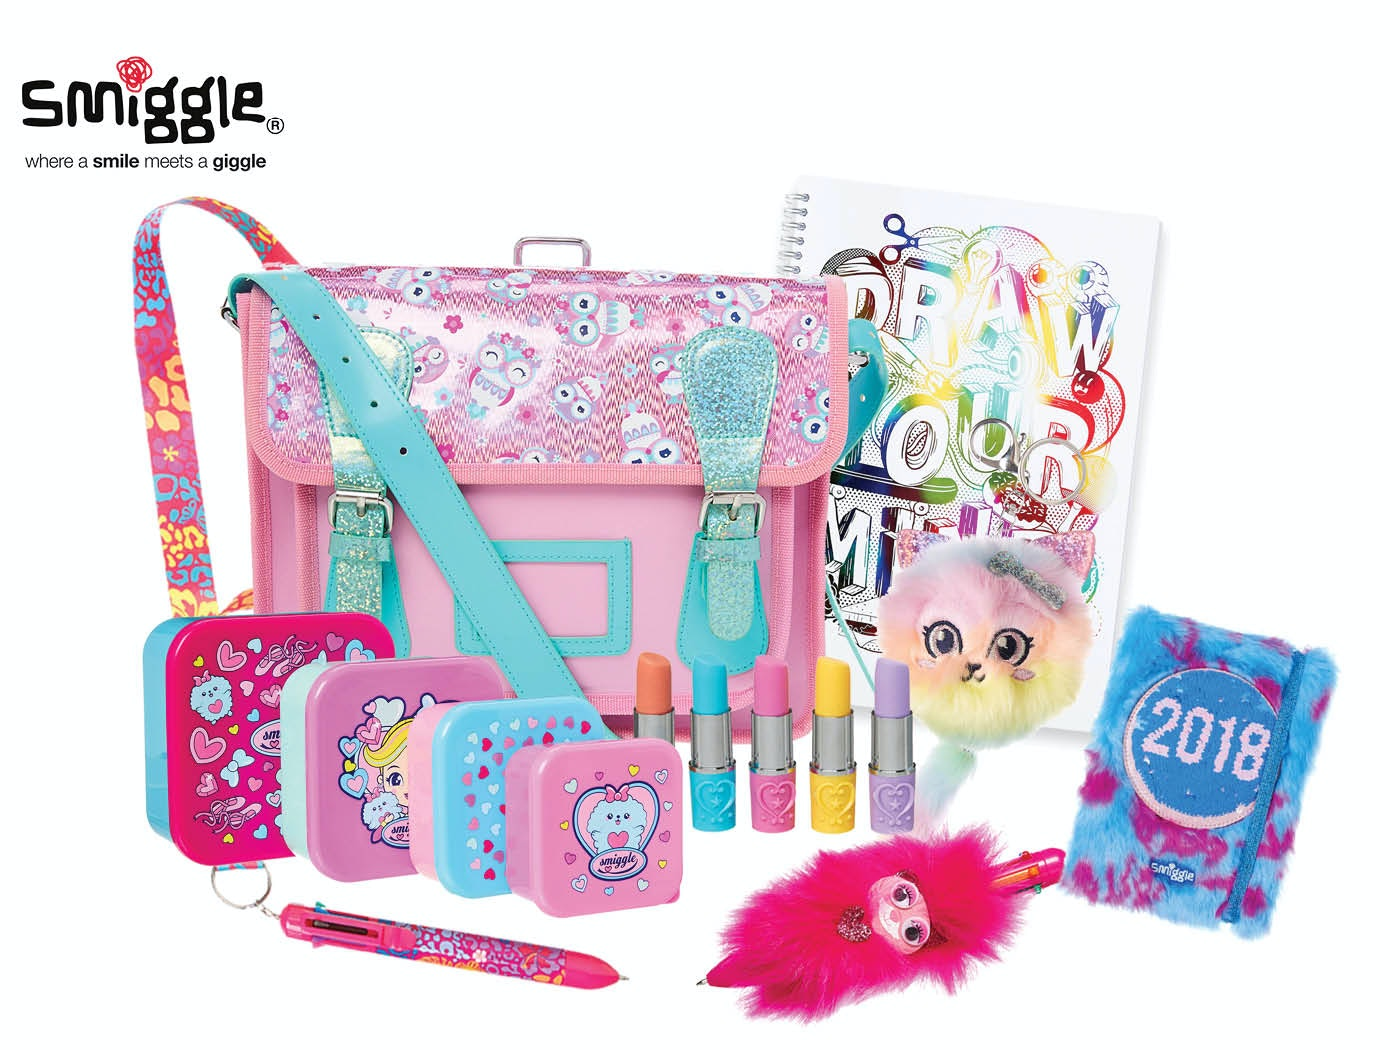 Smiggle Girls Back to School prize pack sweepstakes